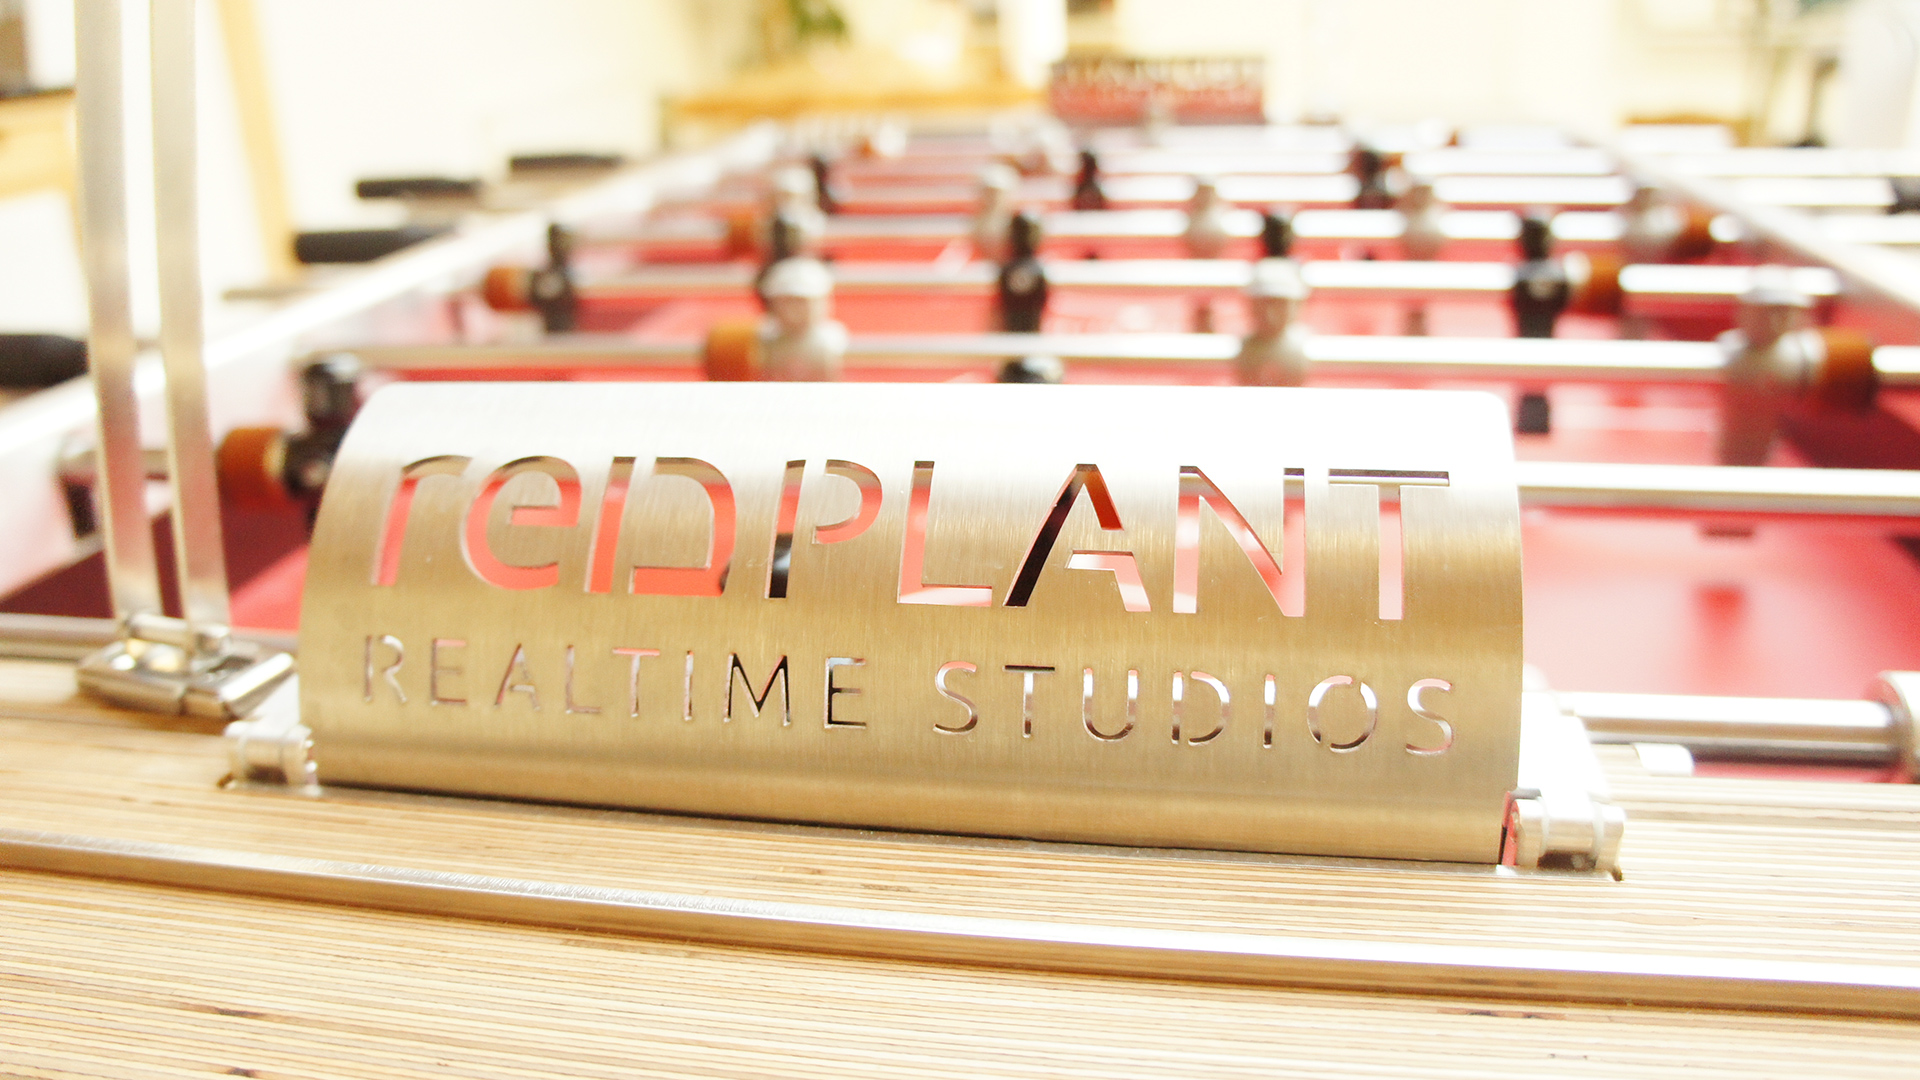 redplant realtime studio table football team header